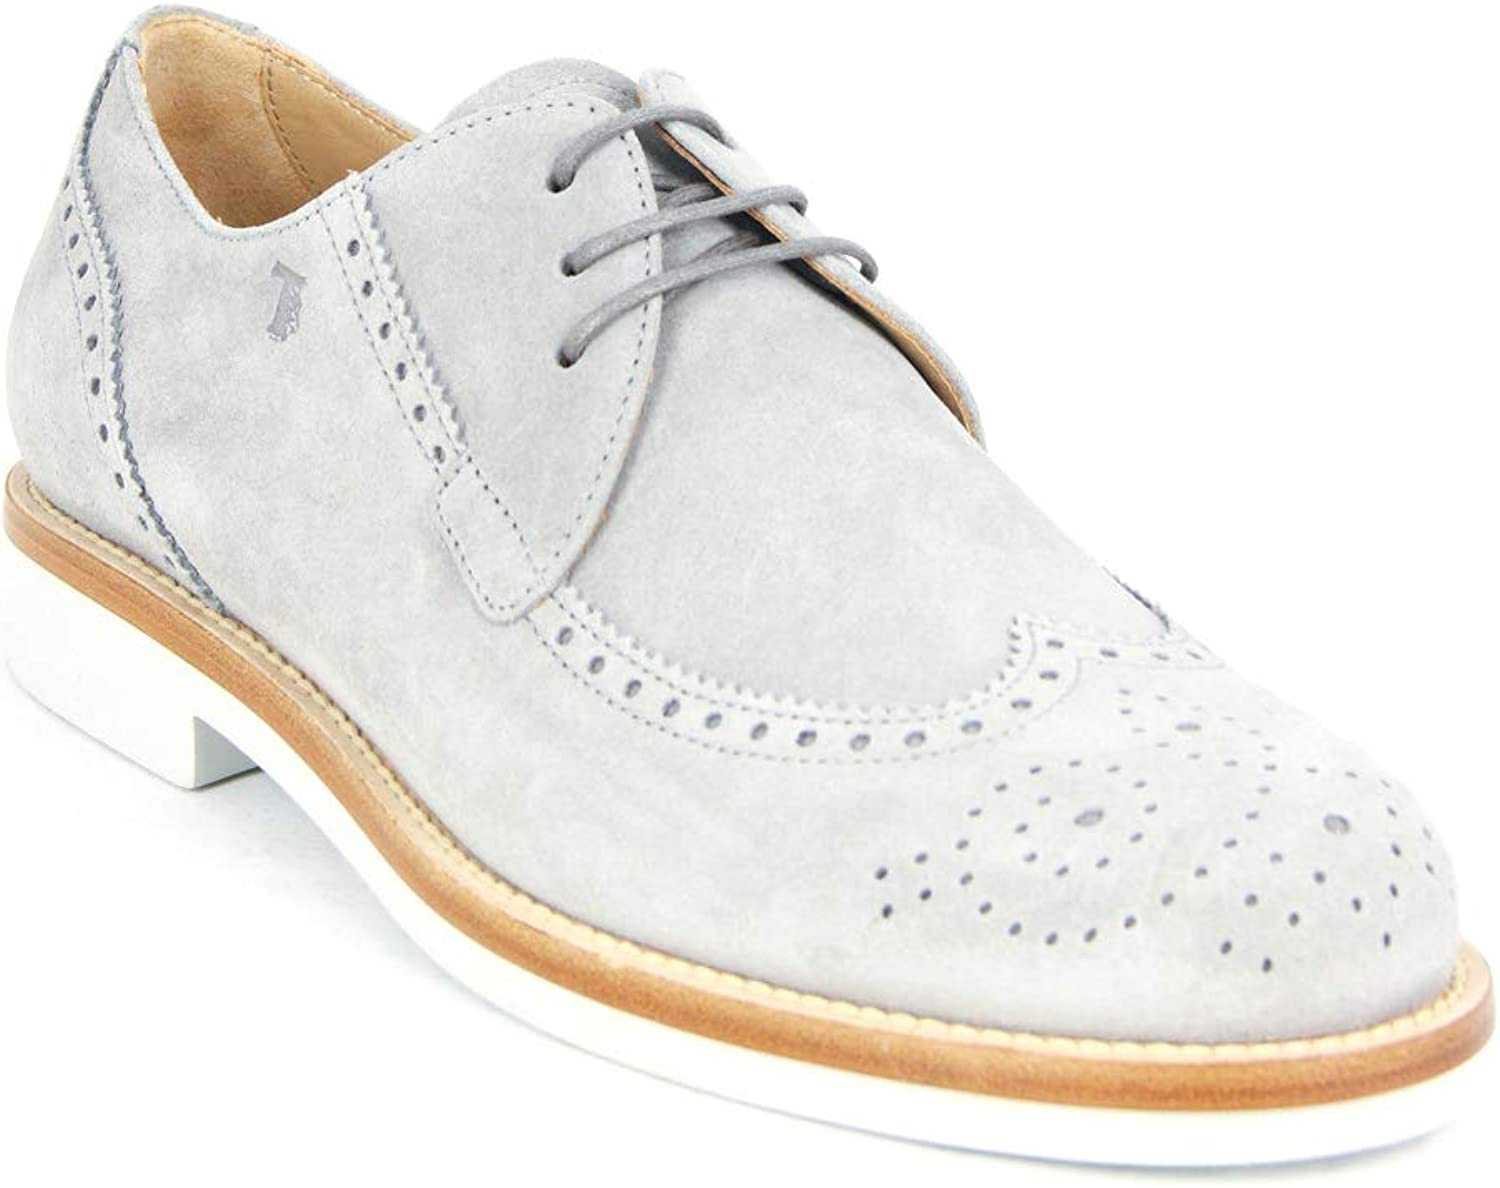 Tod's Men's All.BUCATURA Shoes Leather Oxfords Sneakers, Glasse